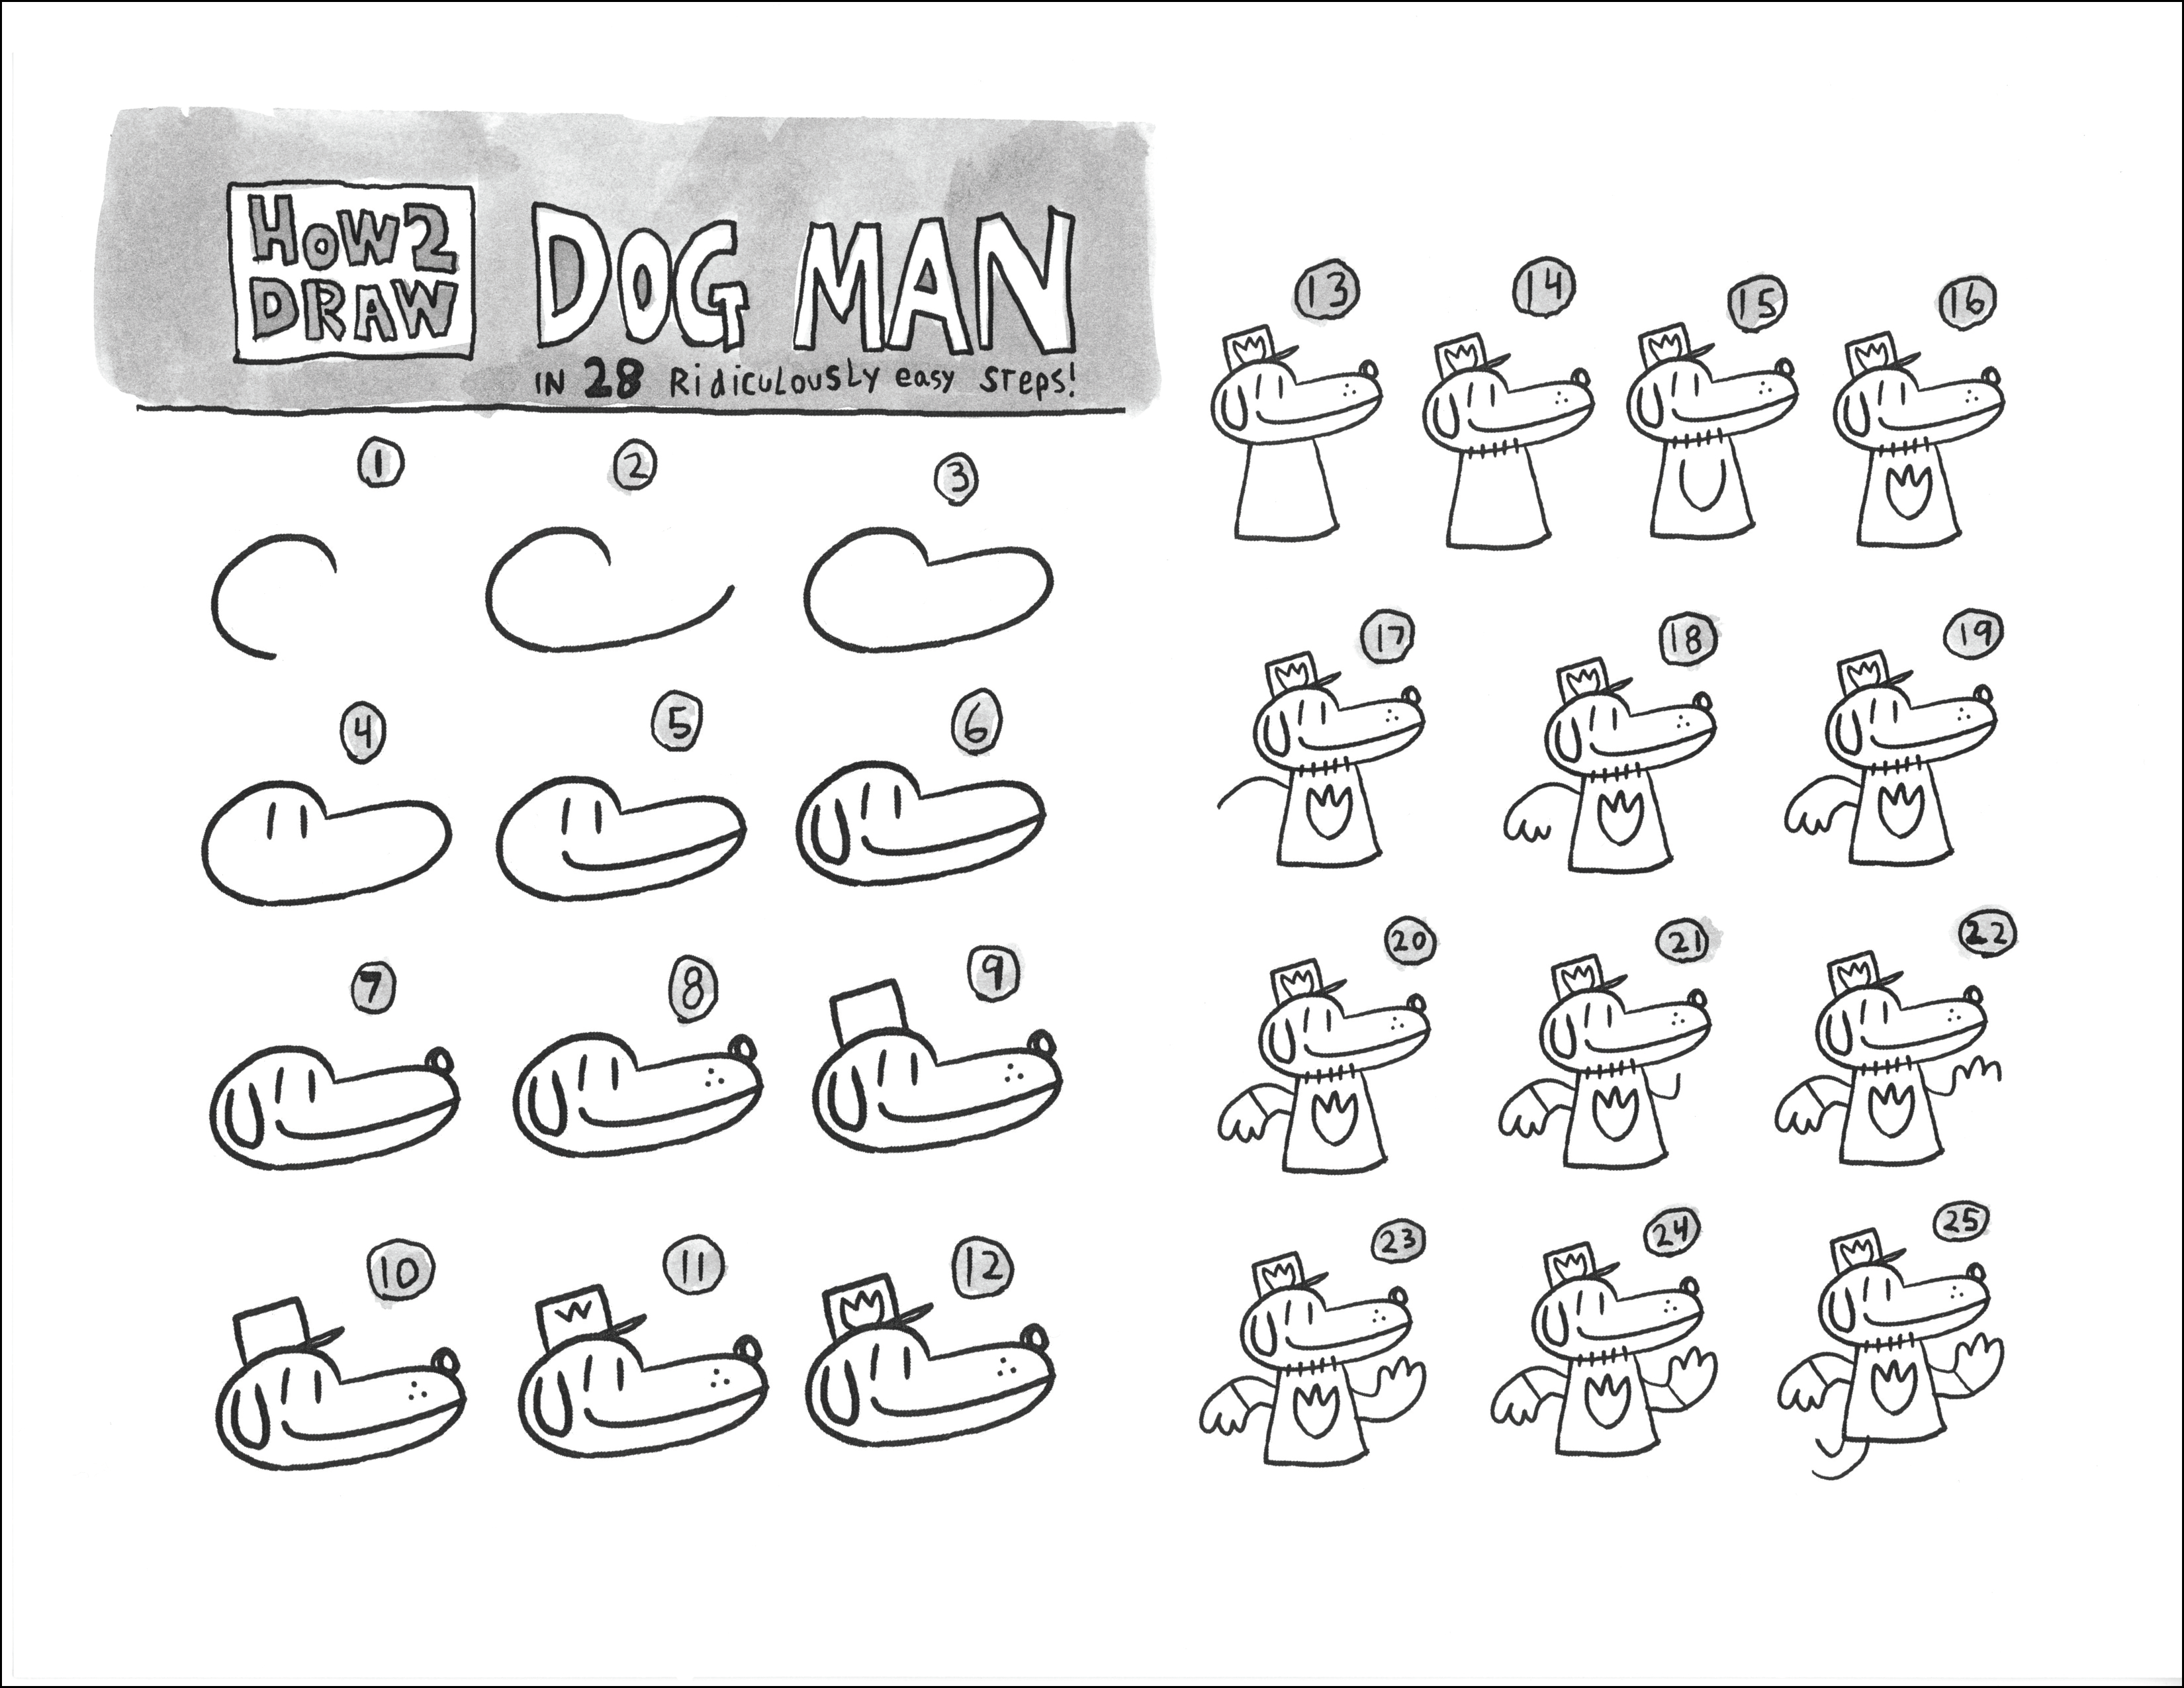 Learn how to draw Dog Man